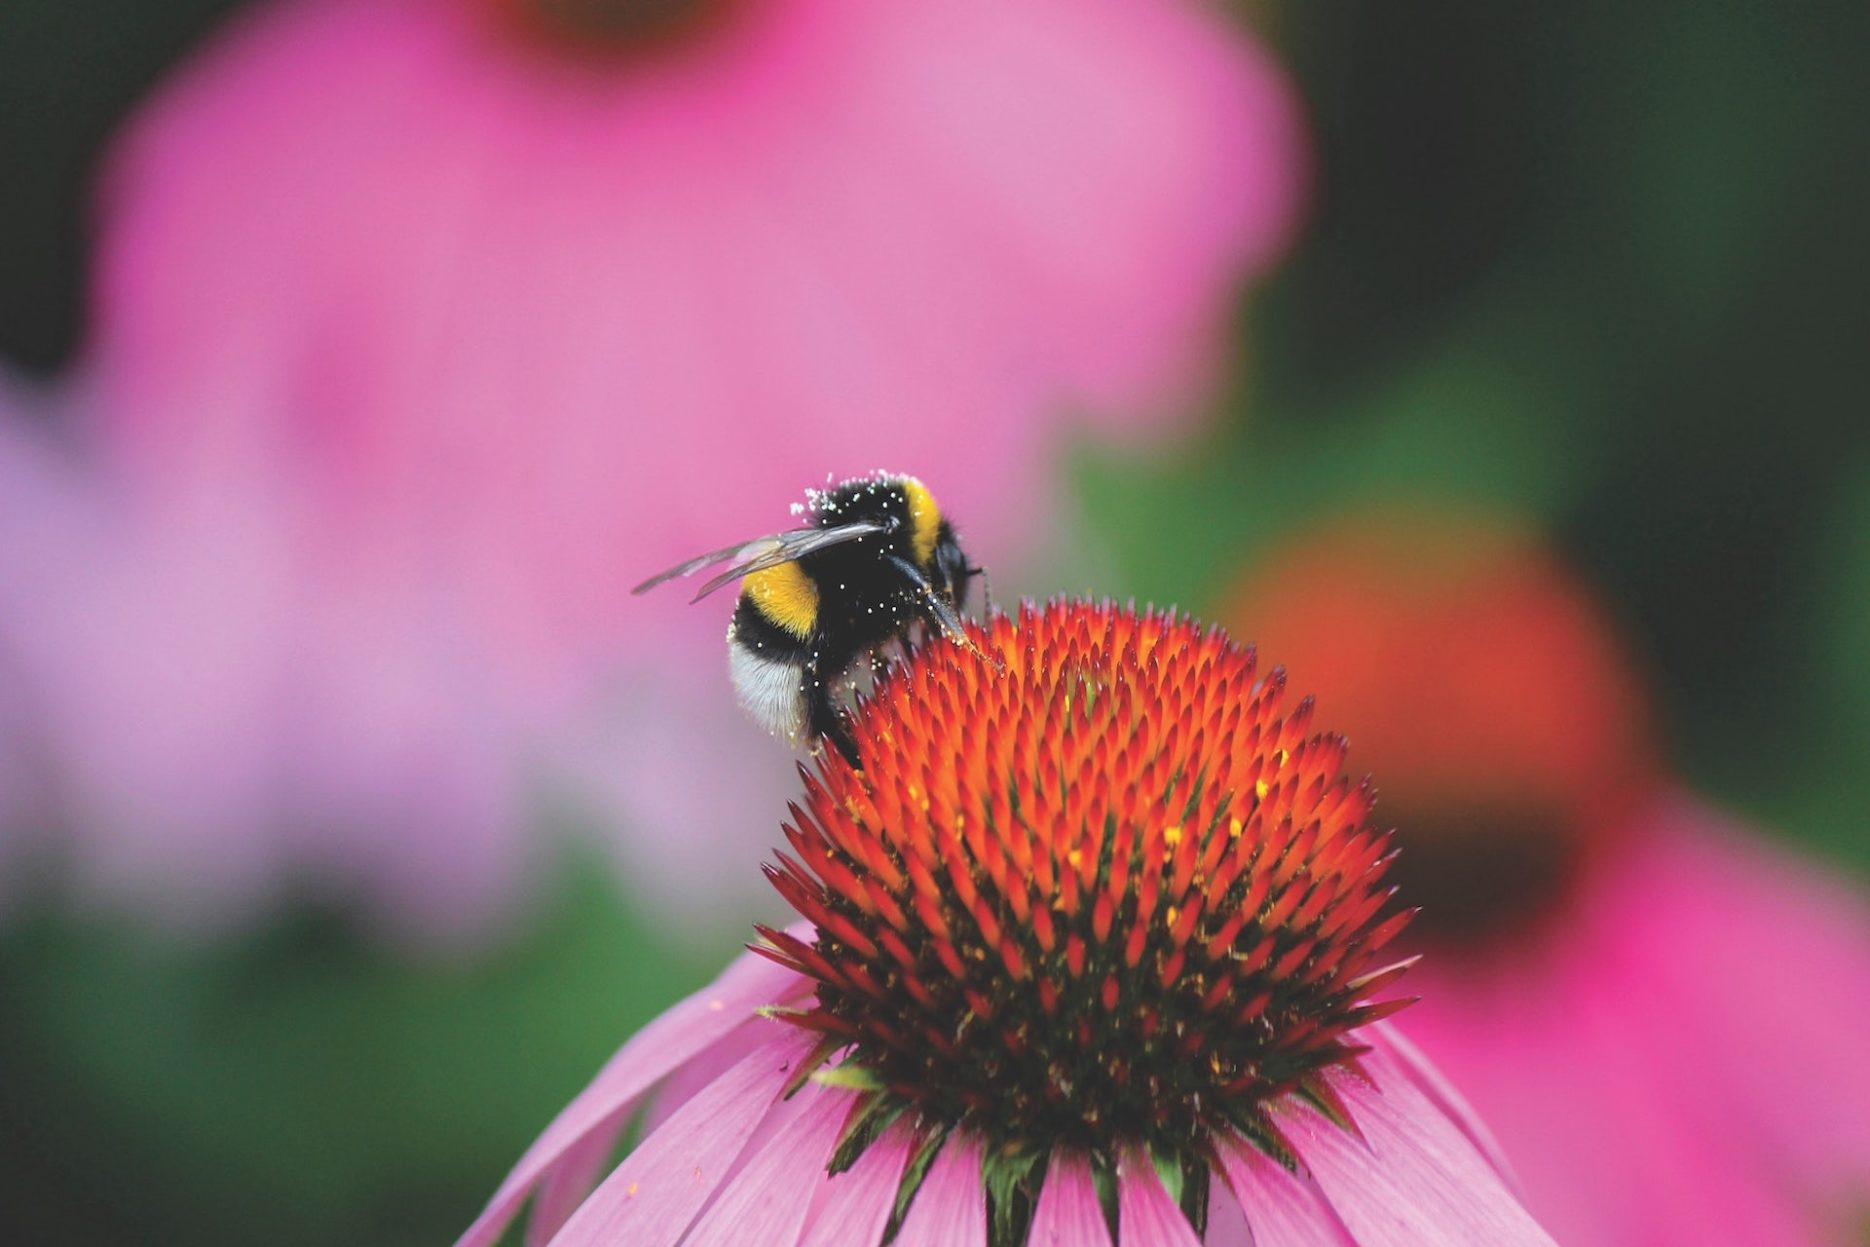 How can an energy business protect bees? – Support the Goals